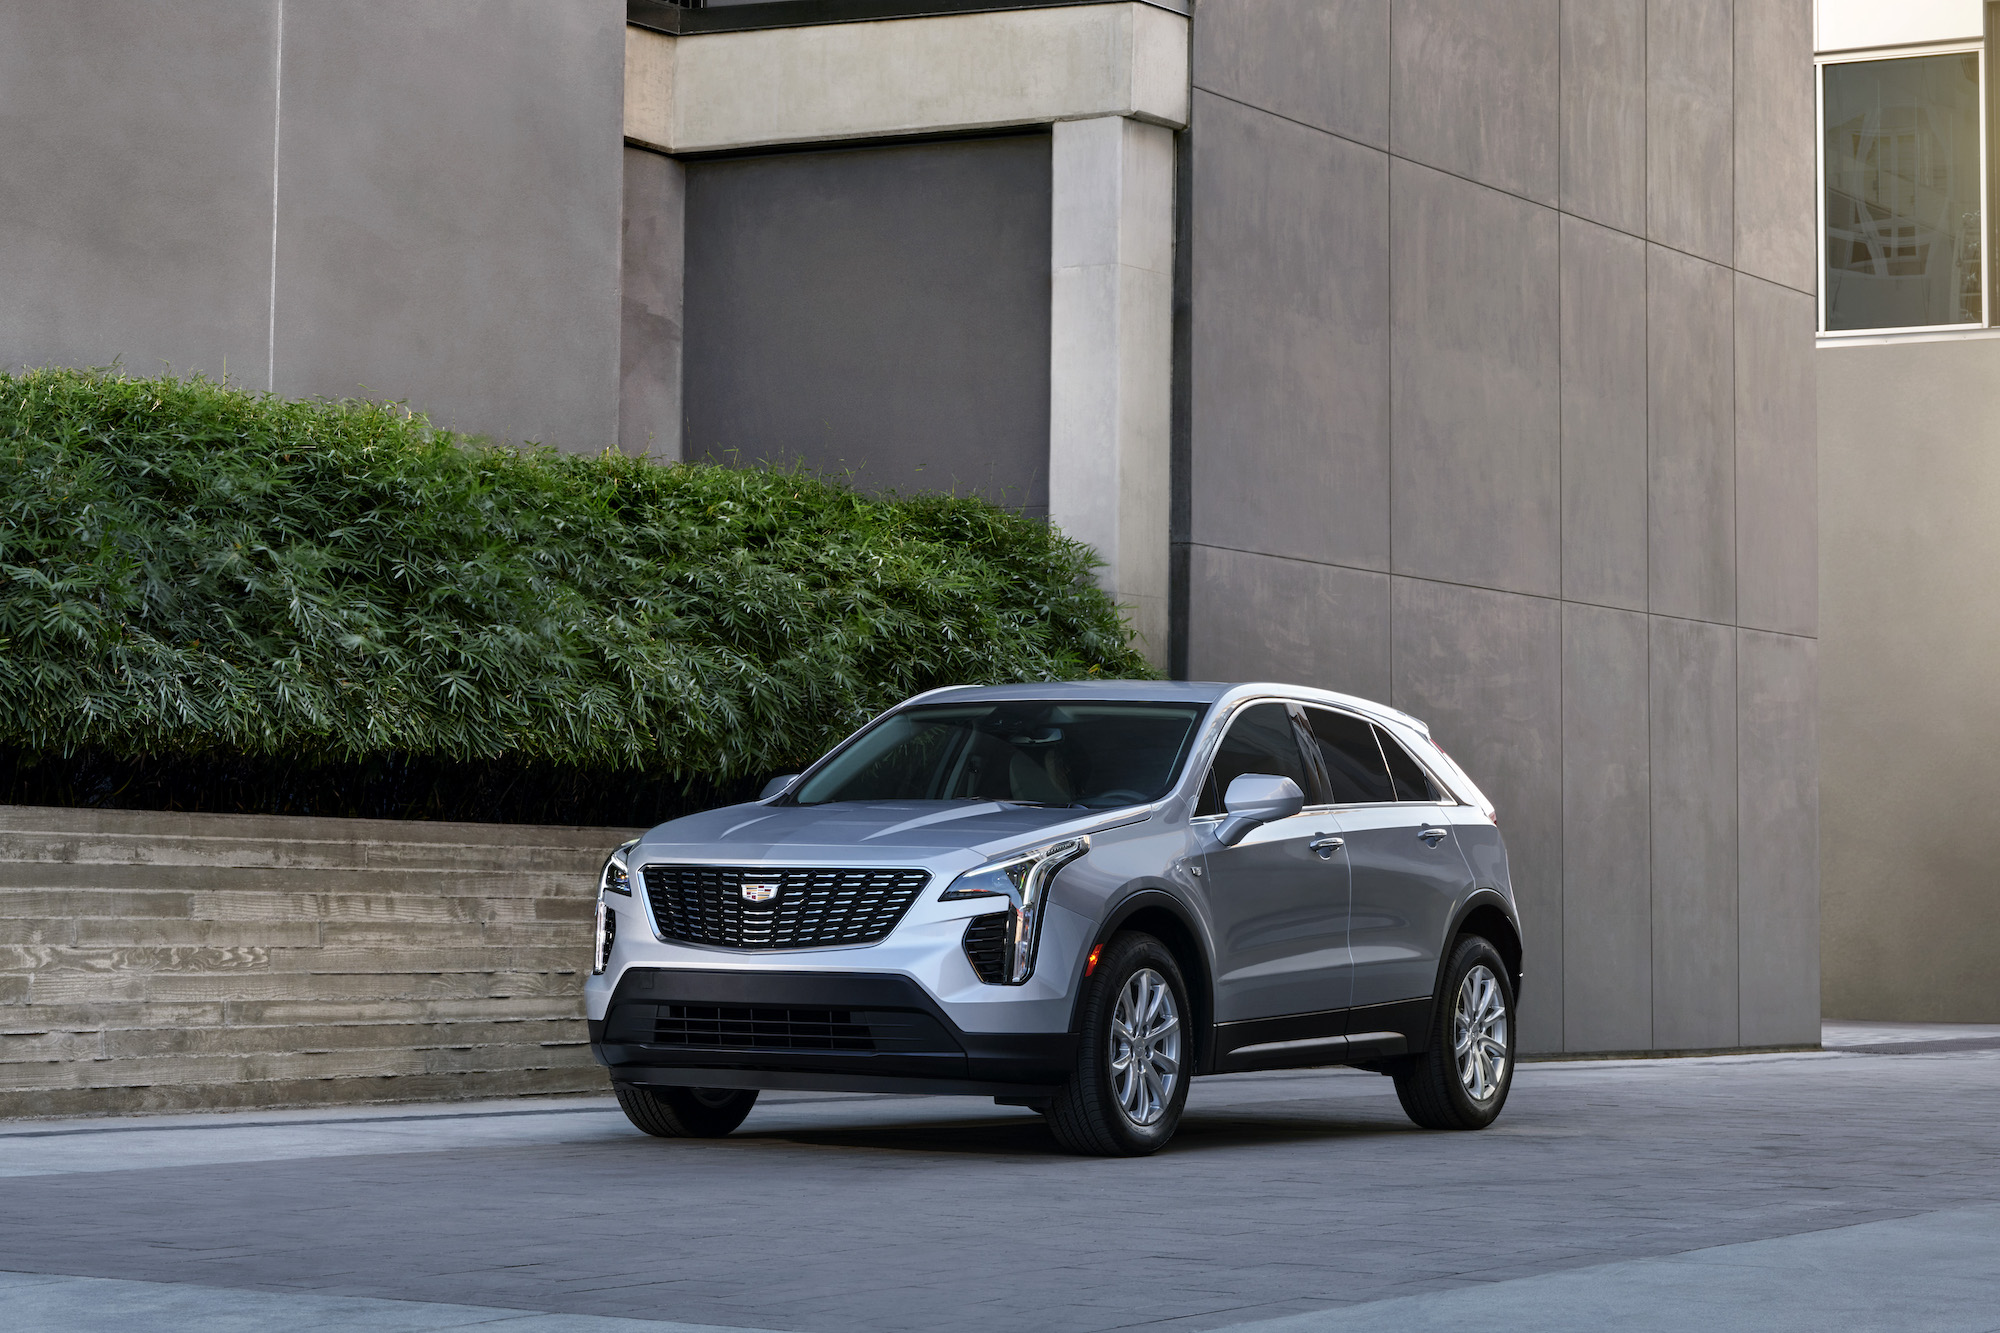 A silver 2021 Cadillac XT4 luxury compact crossover SUV parked next to a brownish-gray concrete modern building with a green hedge